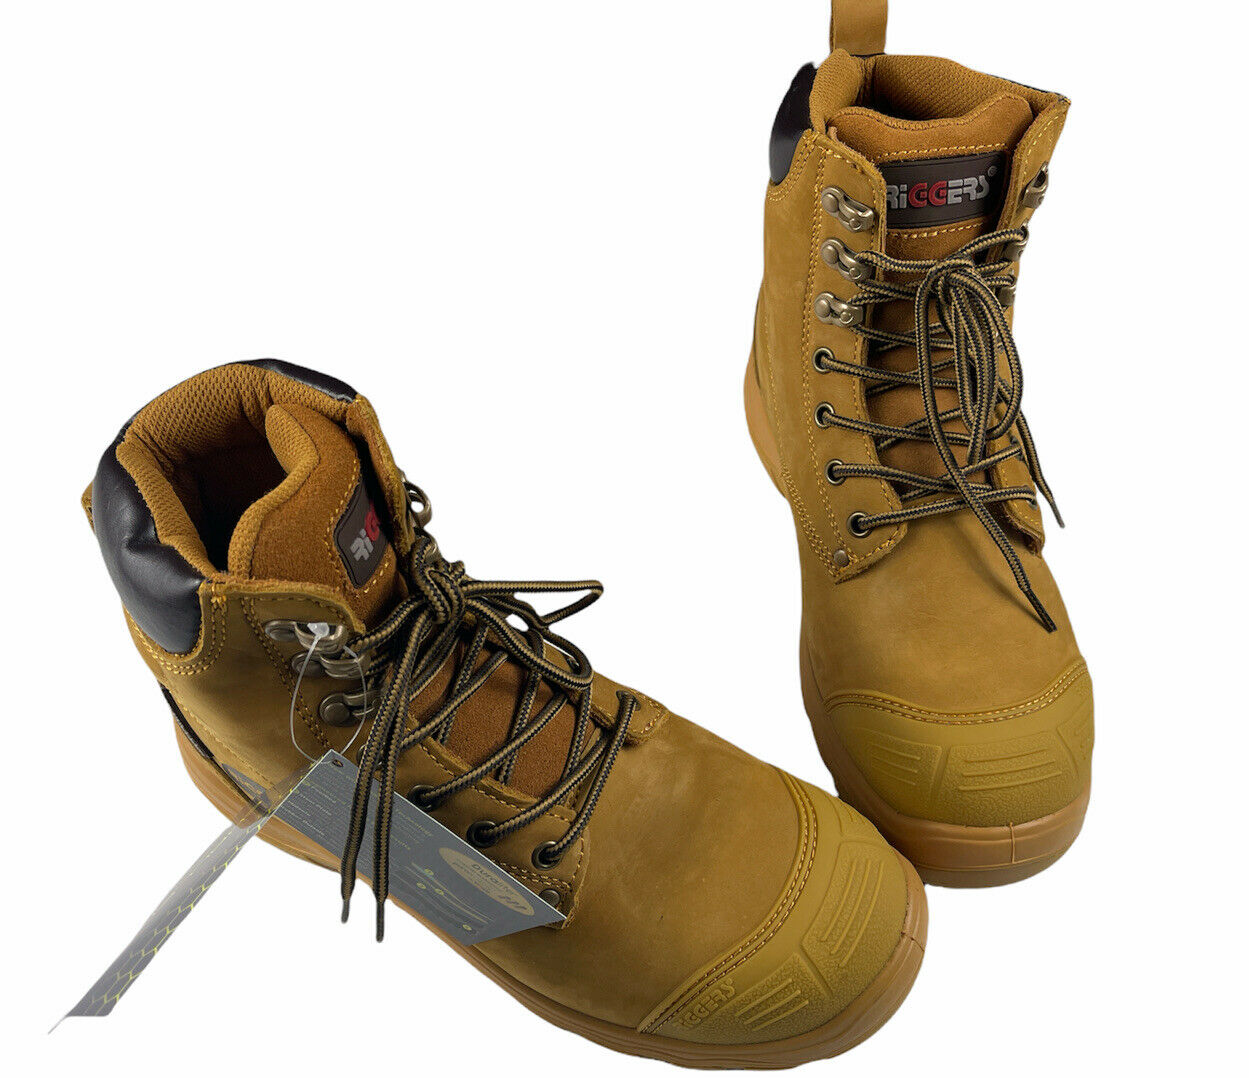 Challenger Riggers Work Boots Size AU8 New With Tags. Free postage